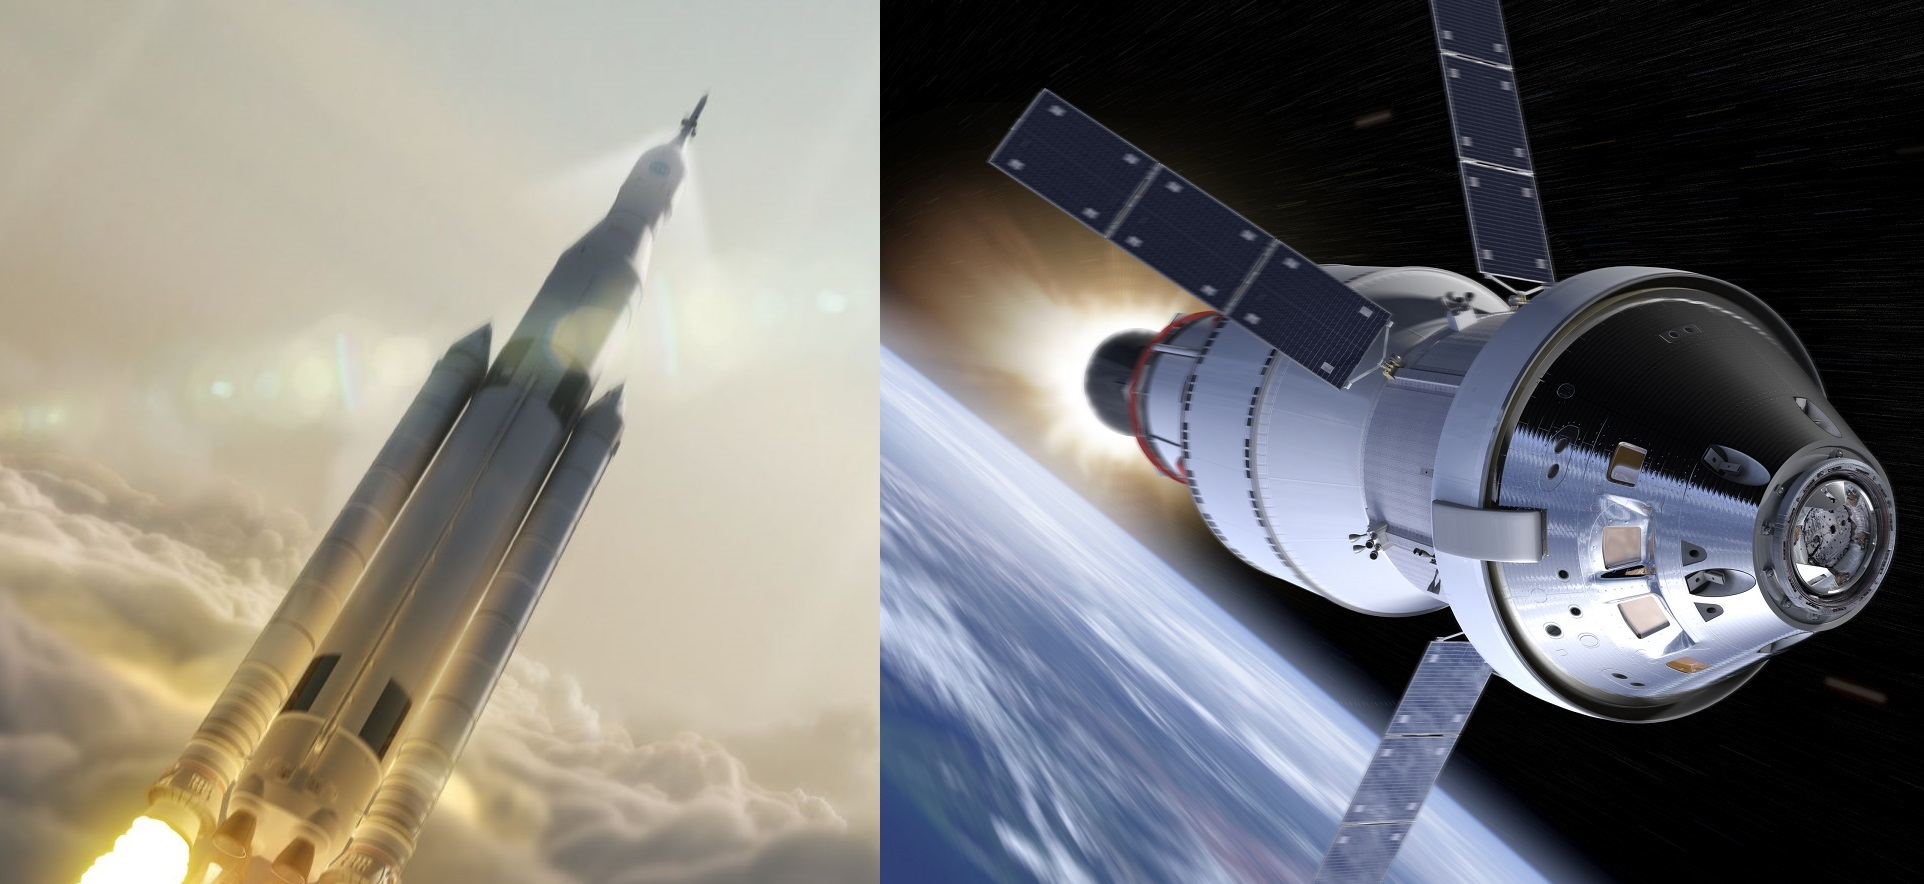 Artist concept of NASA's Space Launch System (SLS) on the left, and the Orion Multi-Purpose Crew Vehicle (right). - Image Credit: NASA